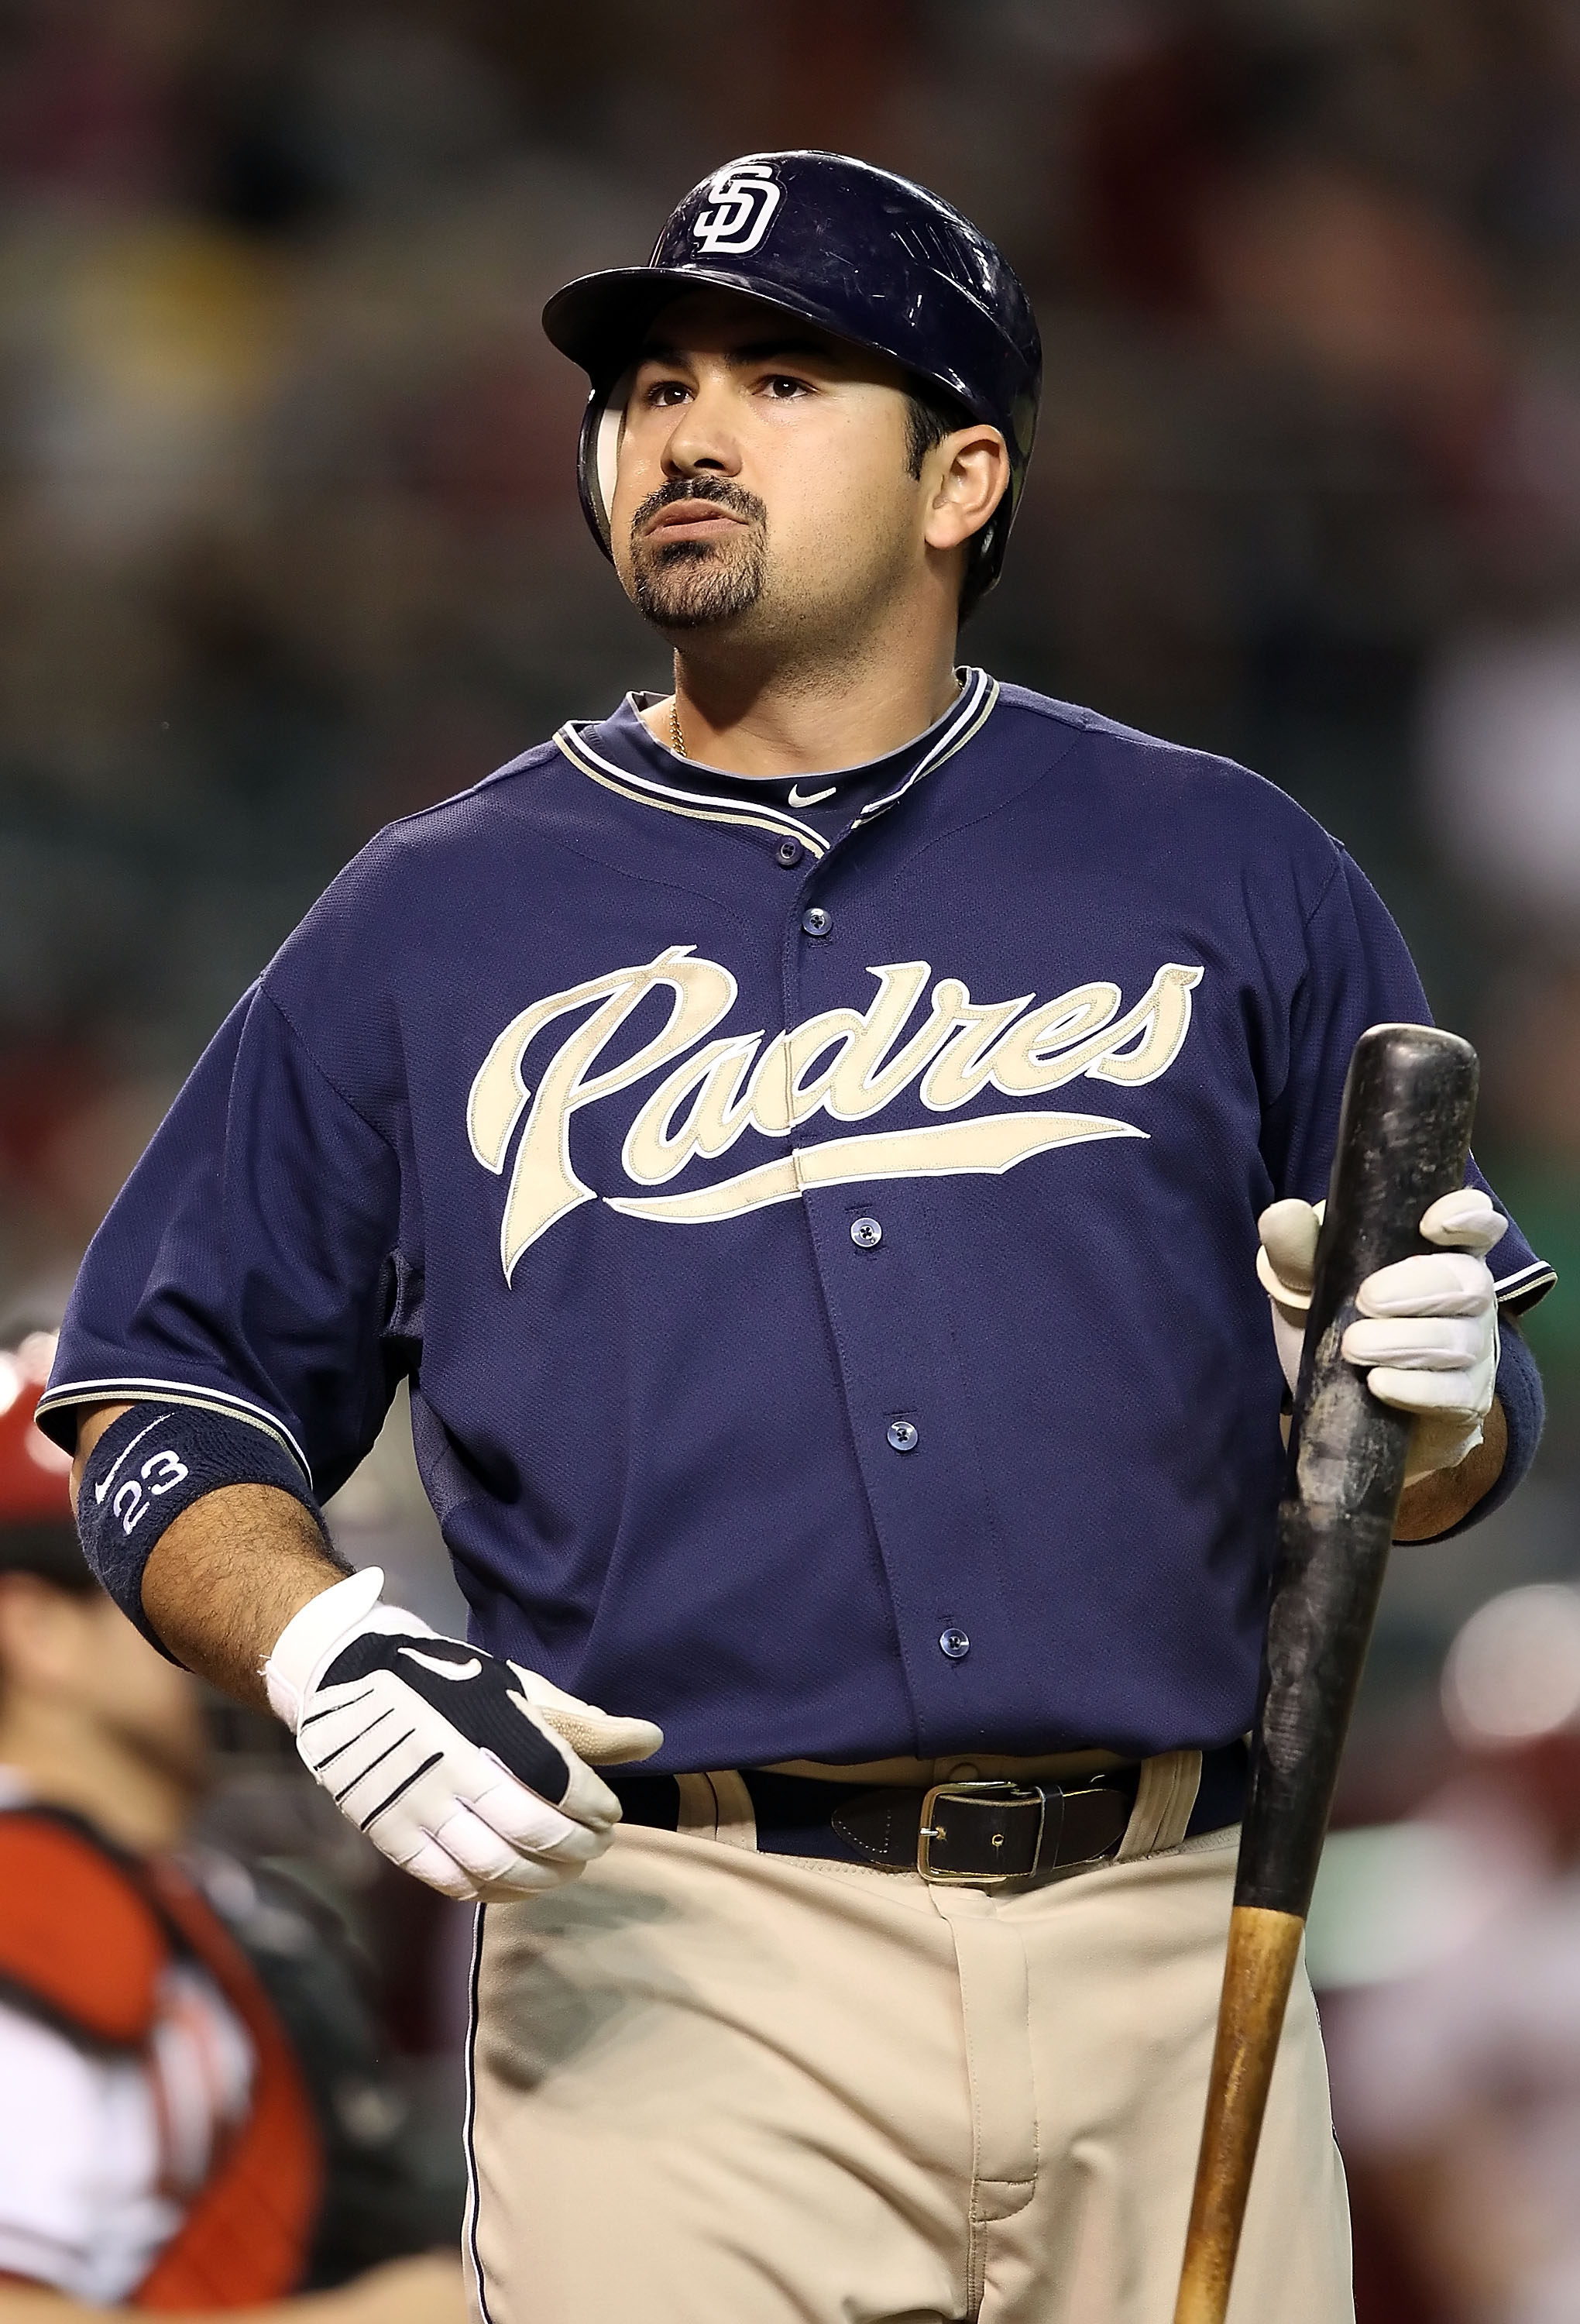 PHOENIX - AUGUST 30:  Adrian Gonzalez #23 of the San Diego Padres at bat during the Major League Baseball game agianst the Arizona Diamondbacks at Chase Field on August 30, 2010 in Phoenix, Arizona.  (Photo by Christian Petersen/Getty Images)